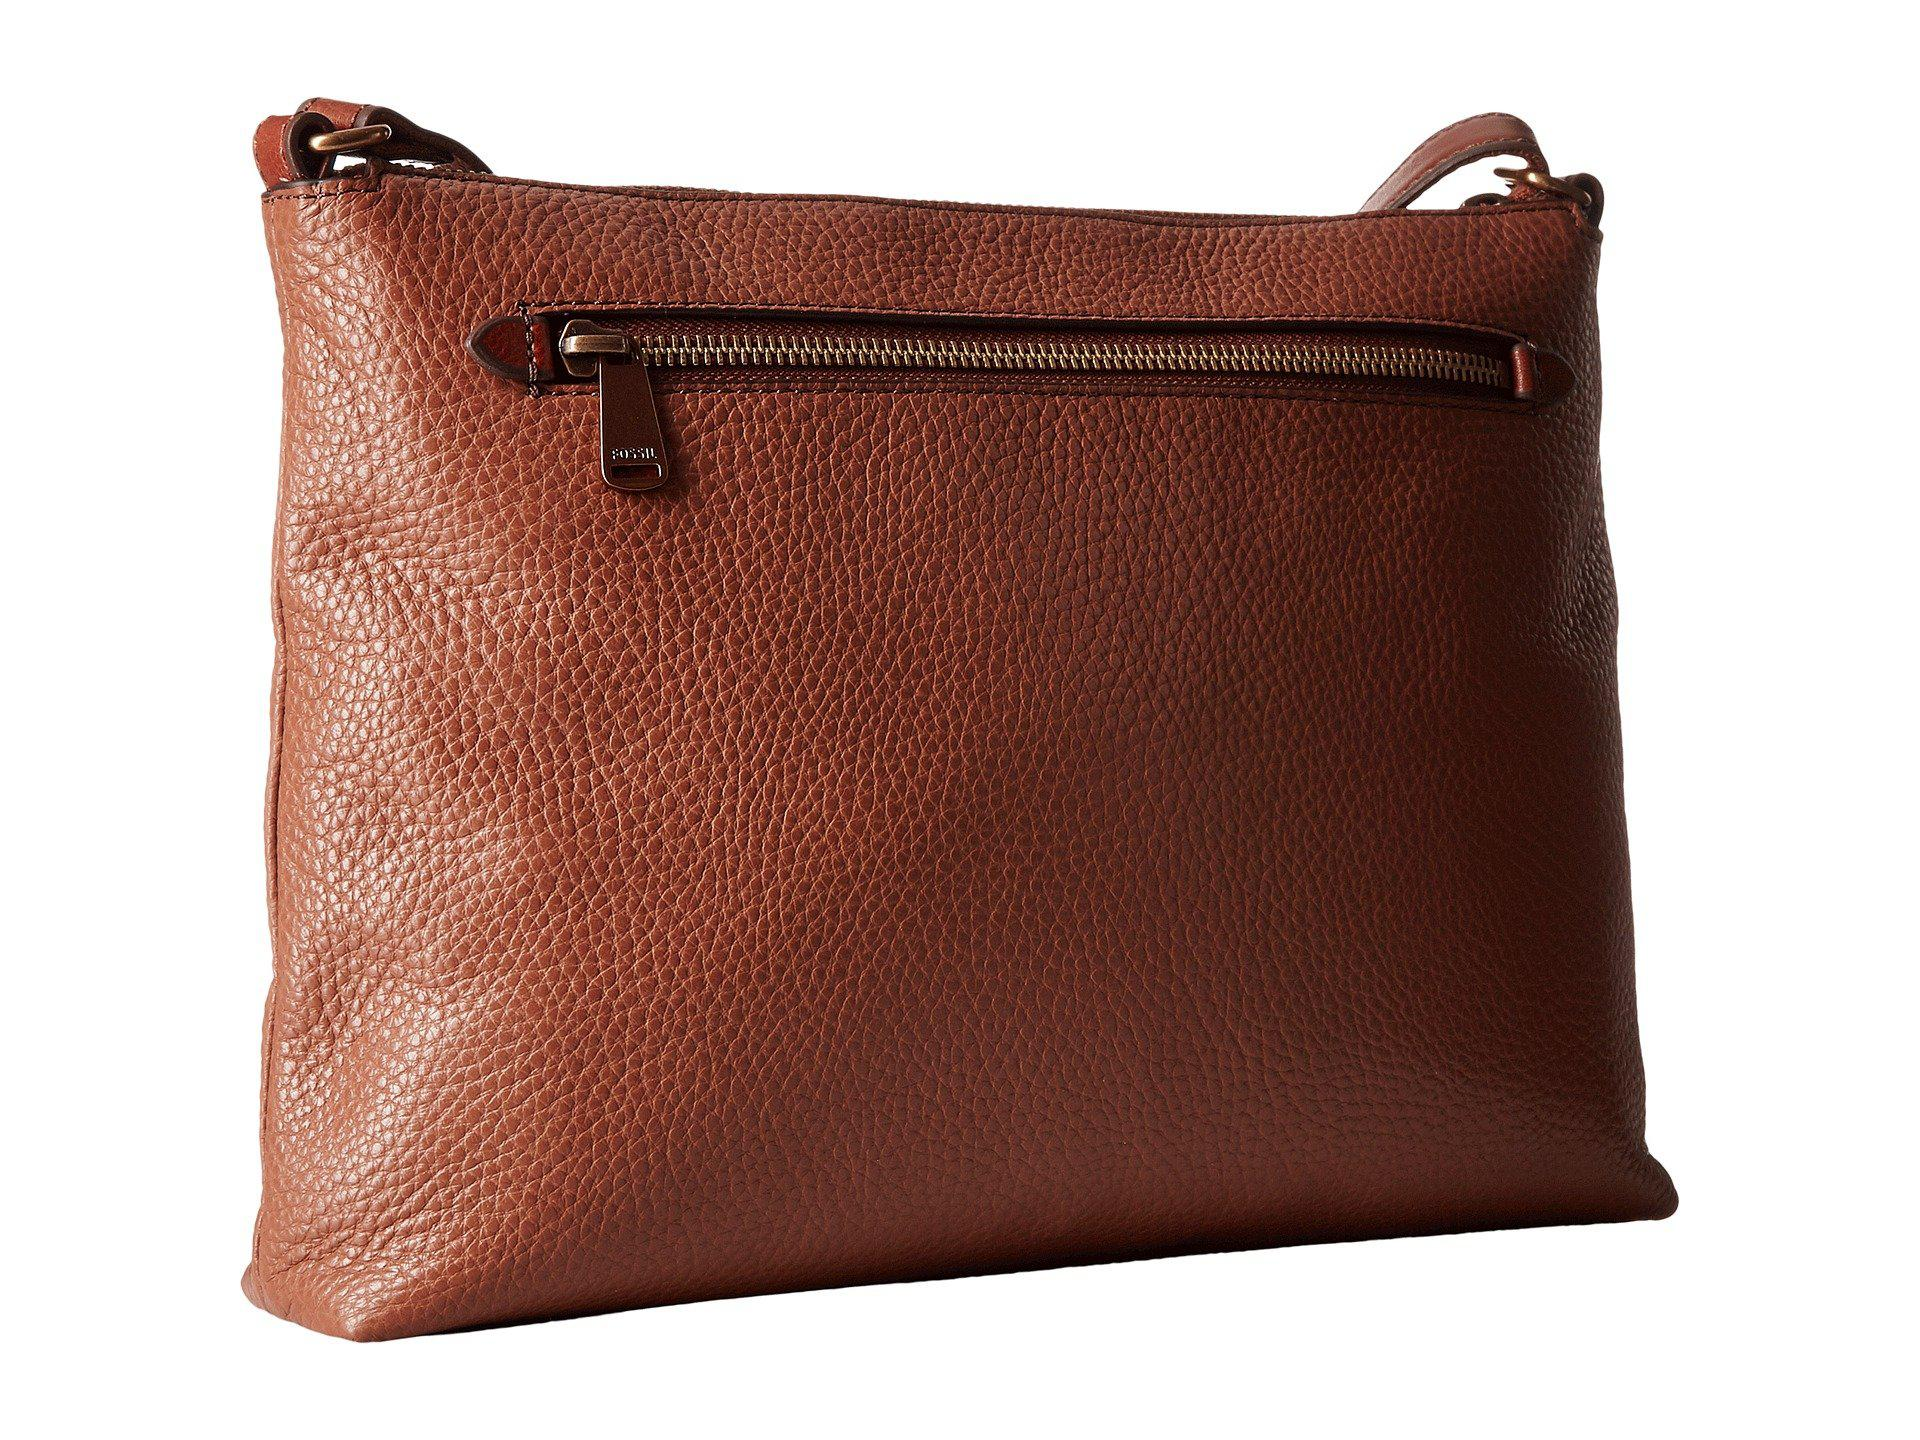 Lyst - Fossil Kinley Crossbody in Brown 97f2c94a1f